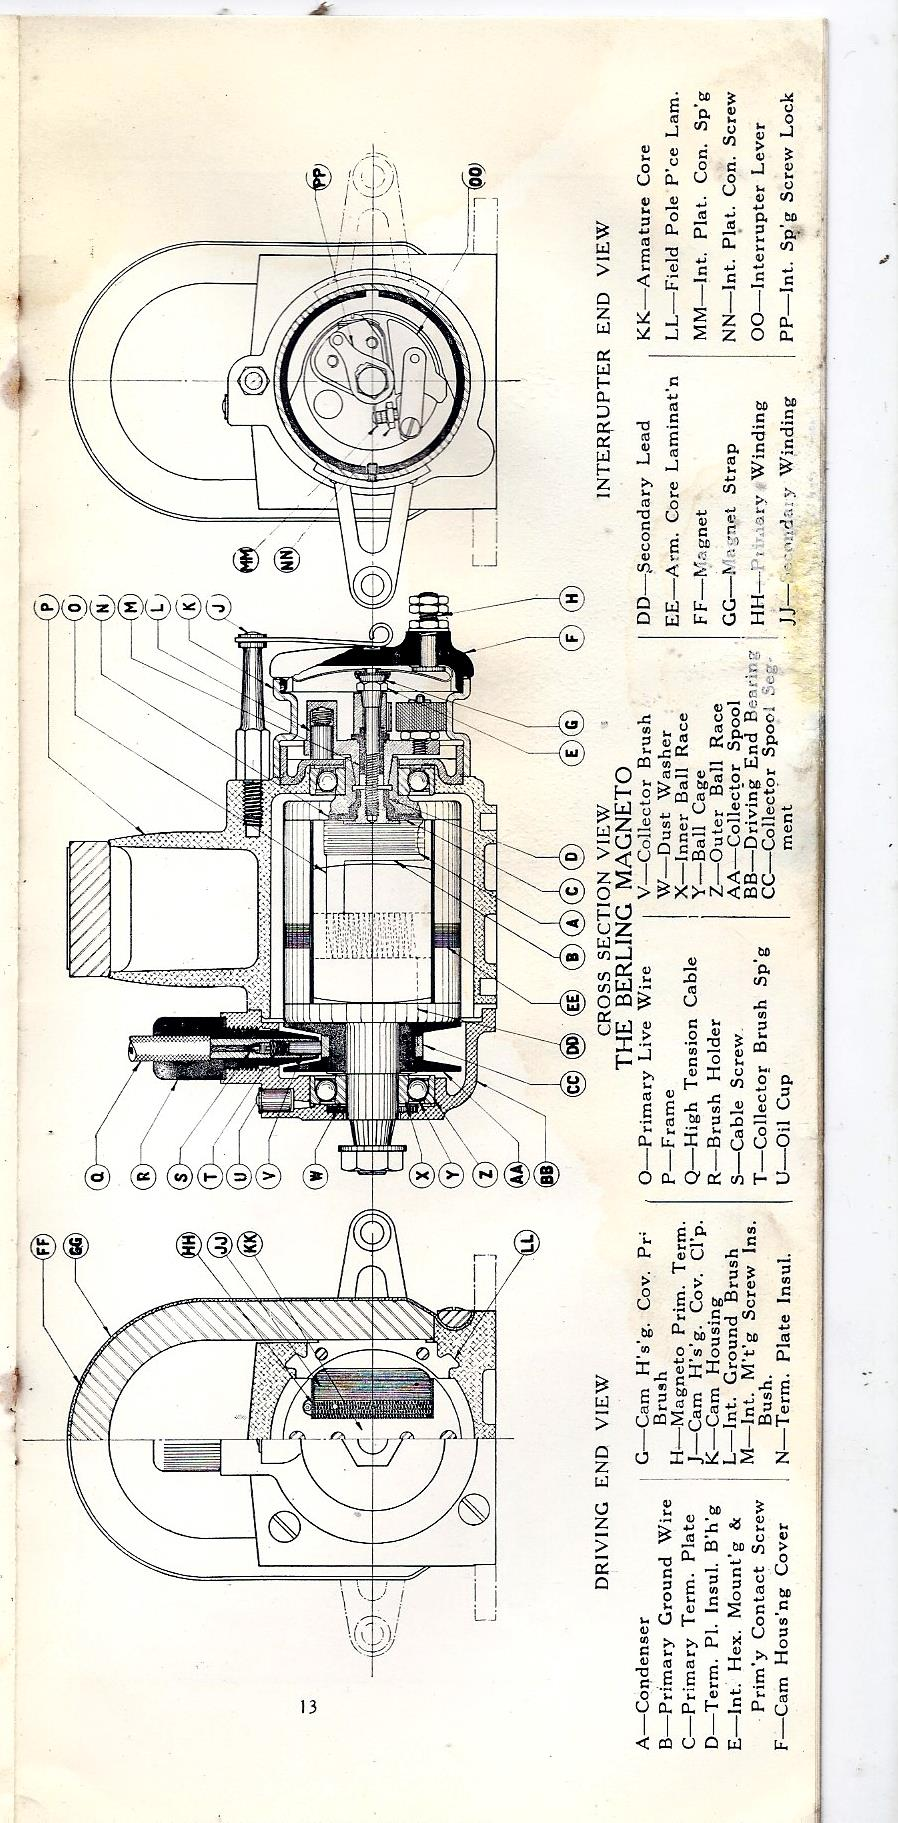 Antique Tractor Wiring Diagrams Auto Electrical Diagram. Berling Types S Mago Manual. John Deere. John Deere 966 Lawn Mower Electrical Diagram At Scoala.co